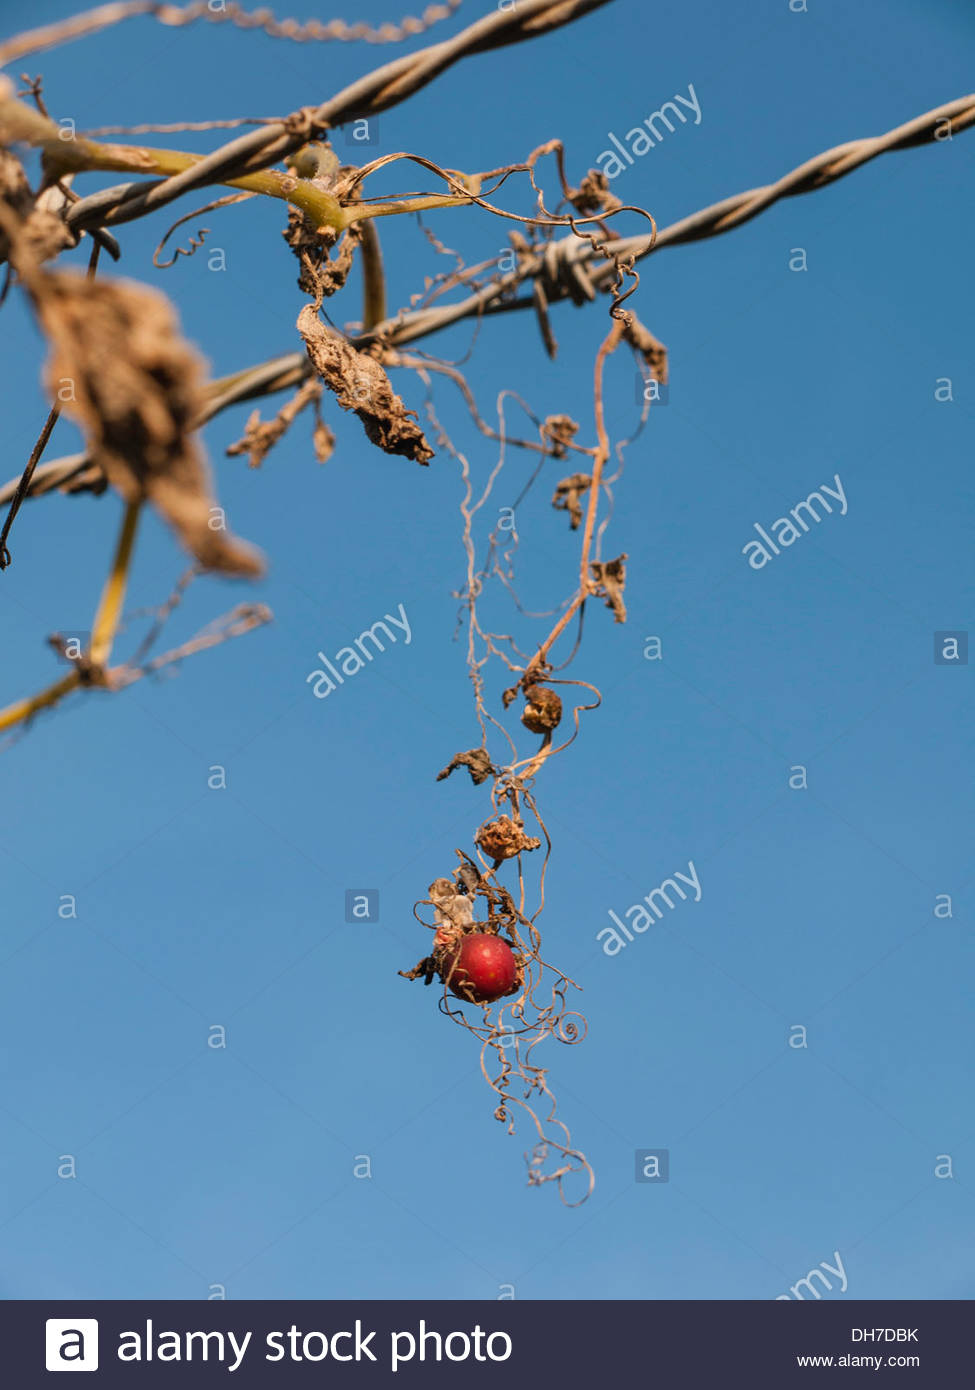 Wild Berry Growing On Fence - Stock Image